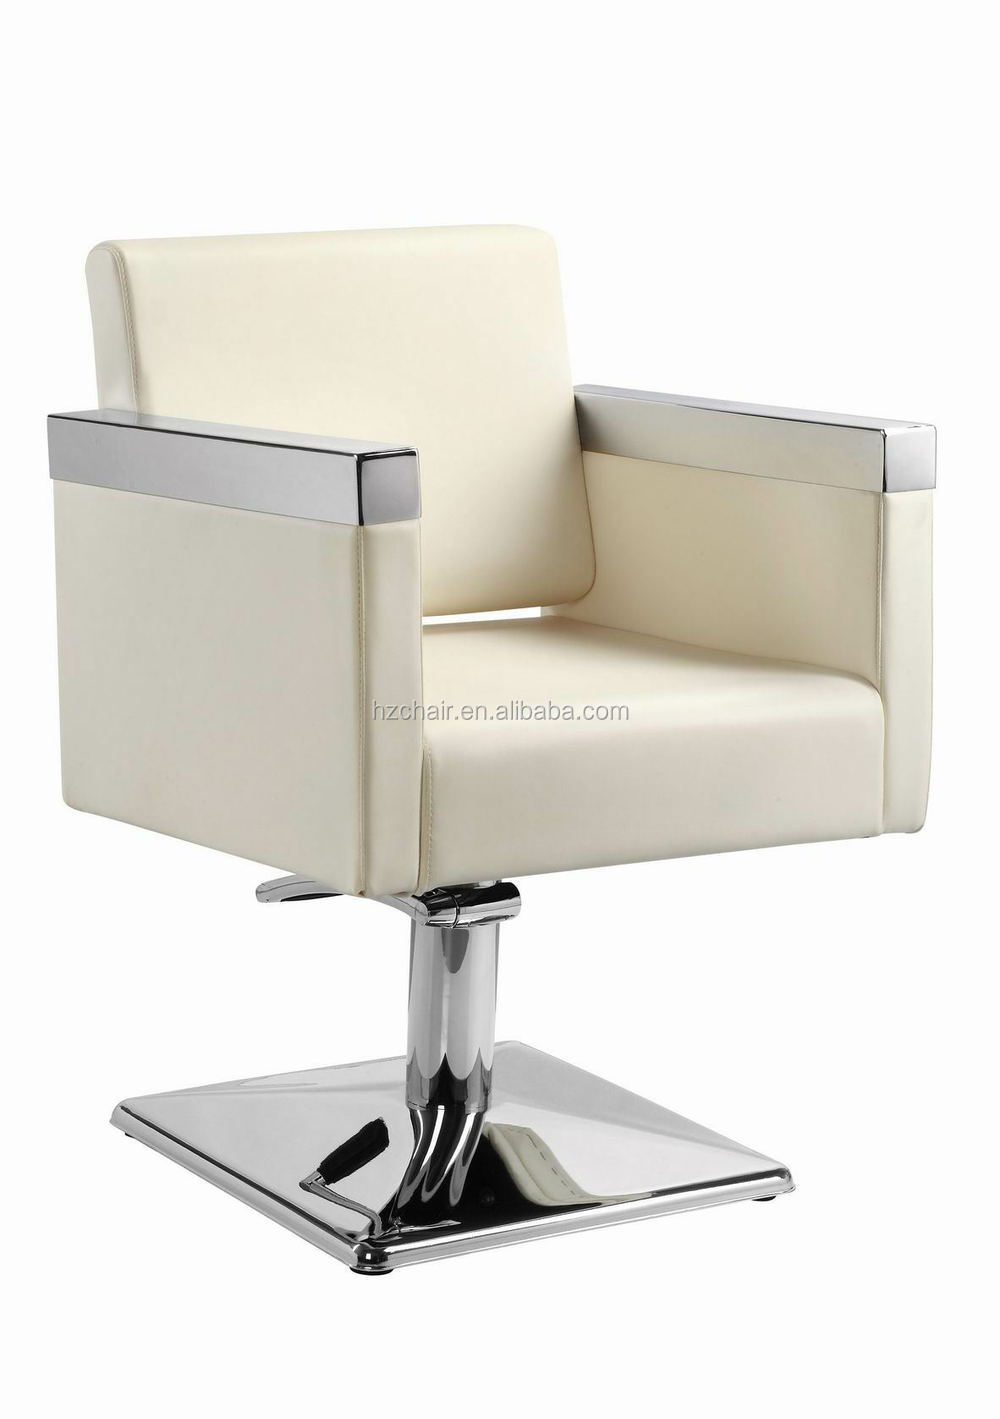 White Hair Salon Chairs - 2015 acrylic styling chair salon furniture snow white comfortable styling chair salon furniture